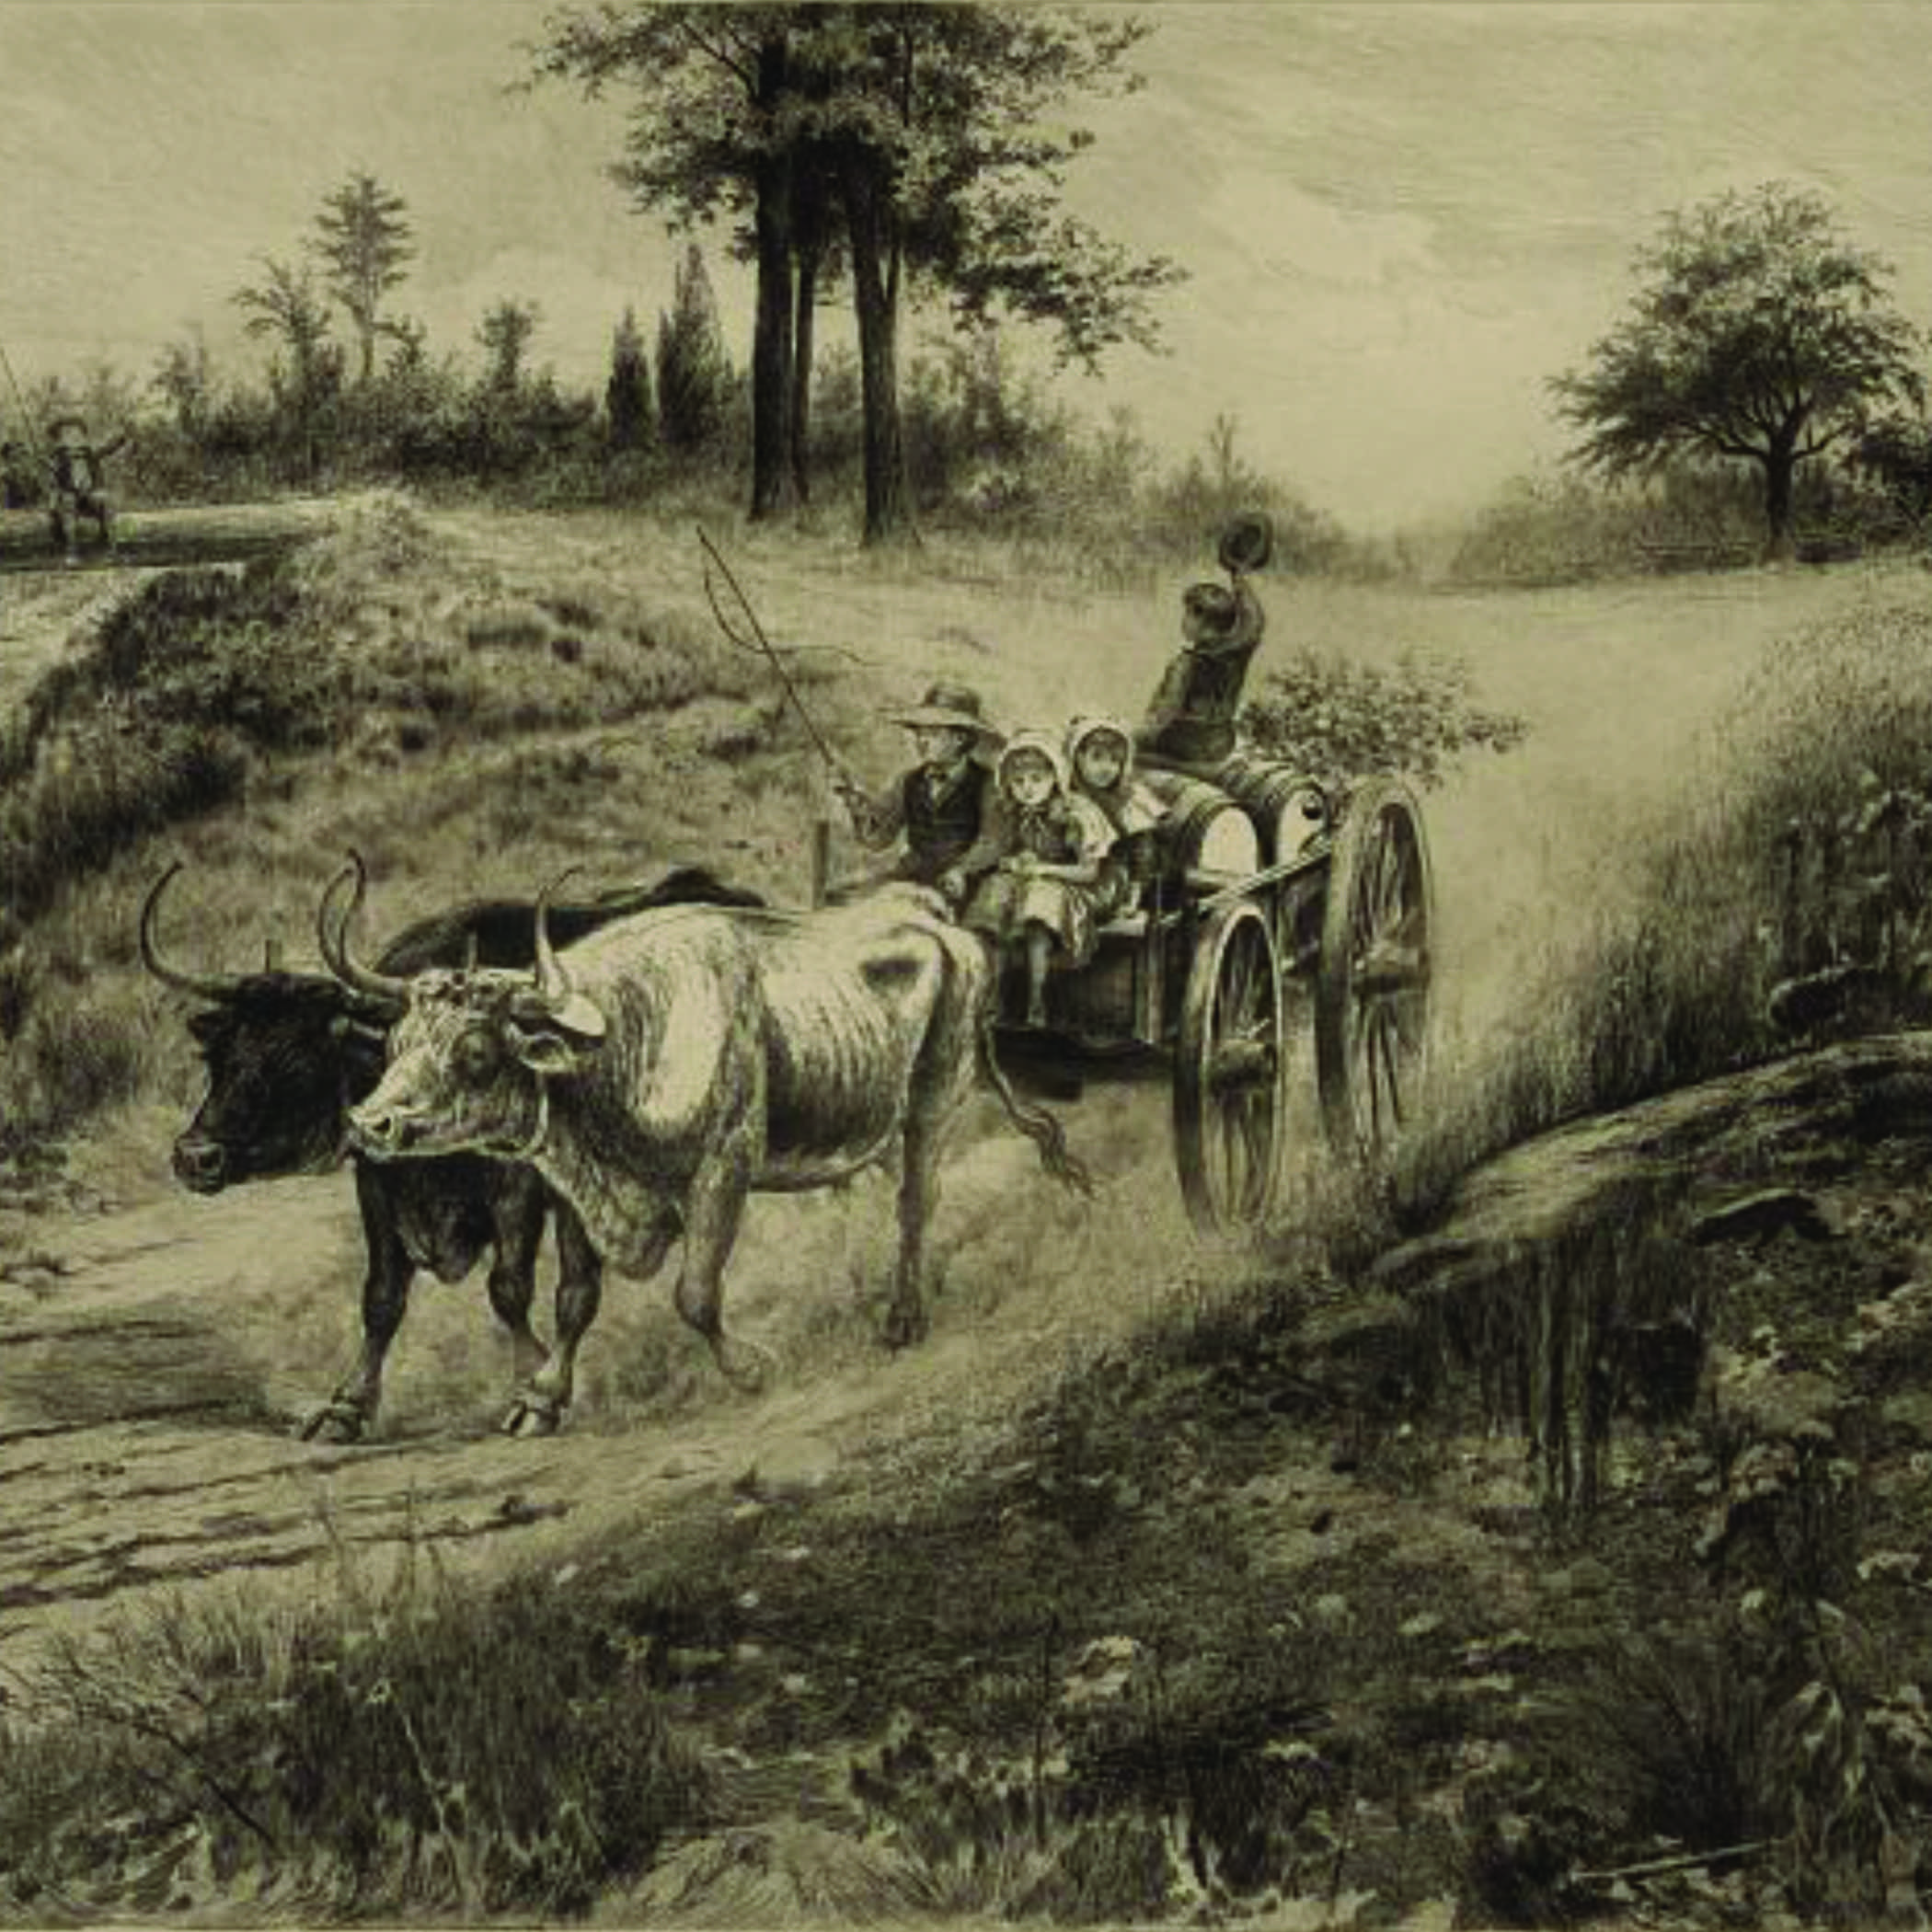 antique drawing of a family riding in a wagon drawn by two oxen